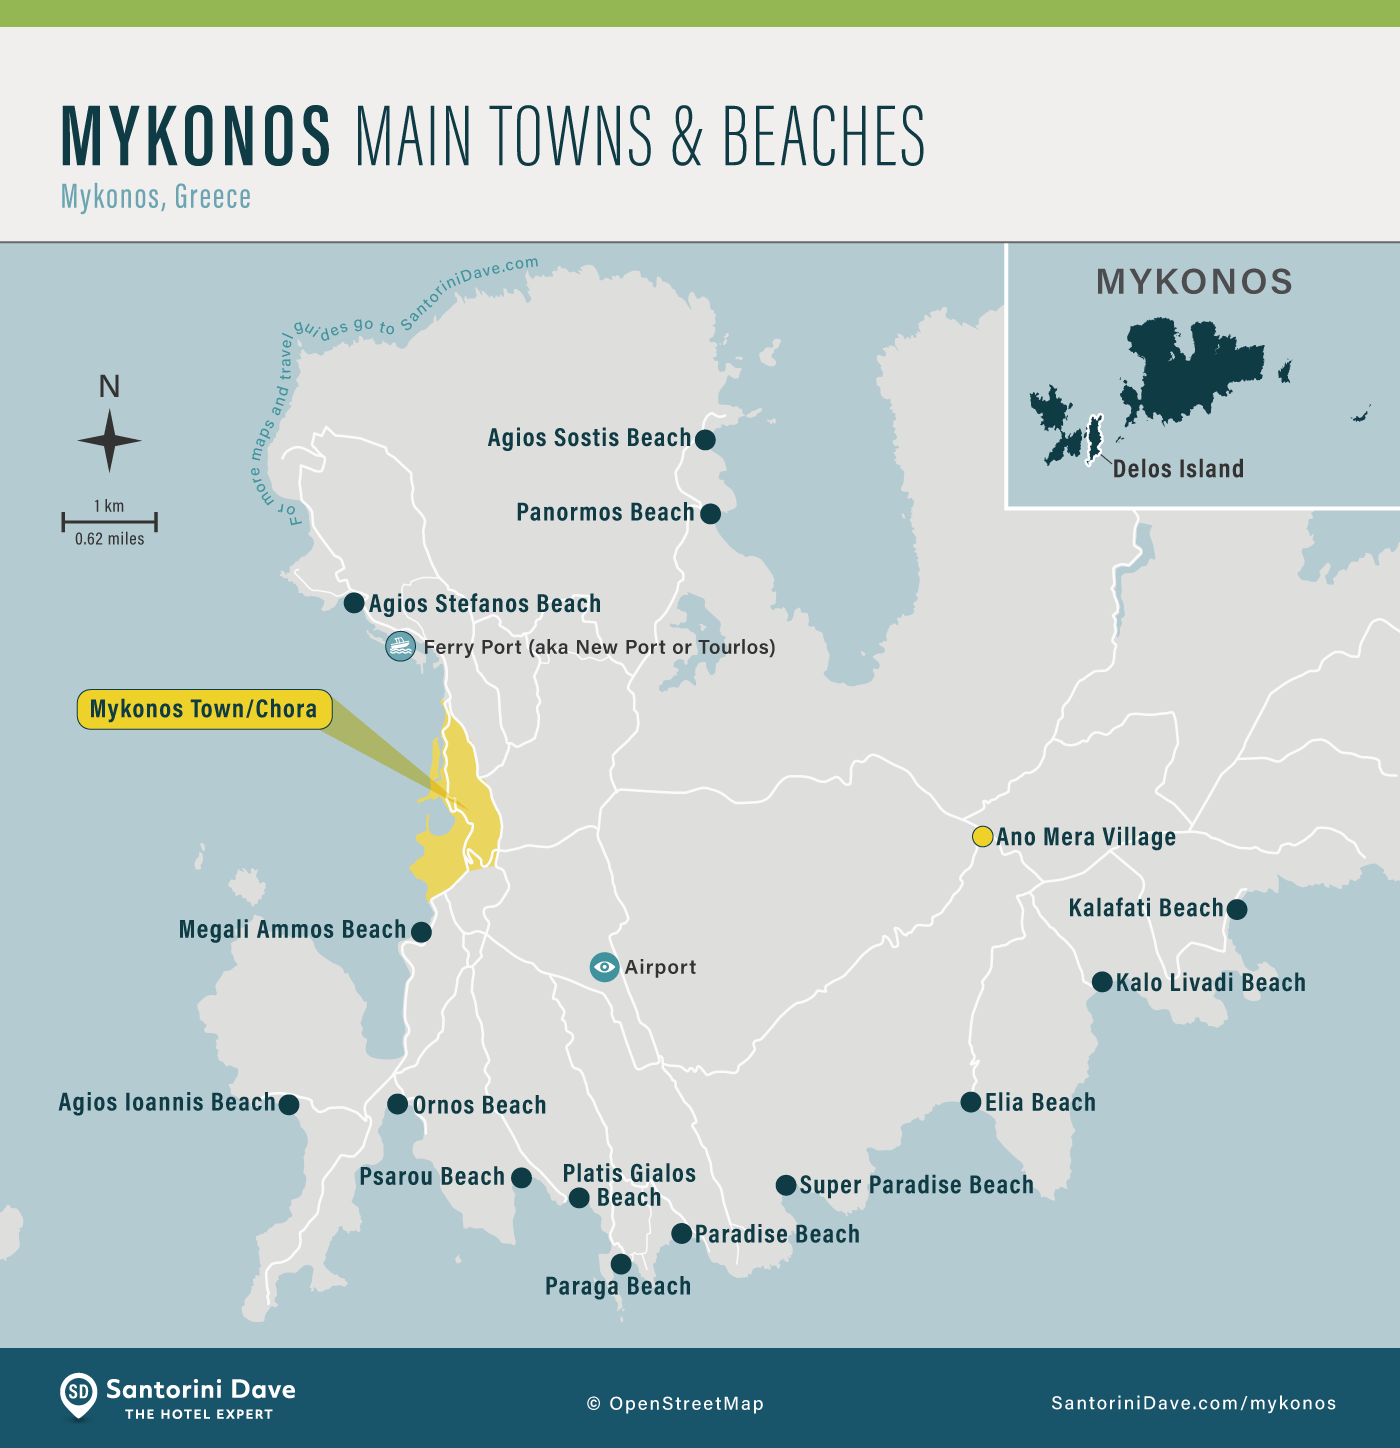 Map showing the location of the main towns and beaches on Mykonos, Greece